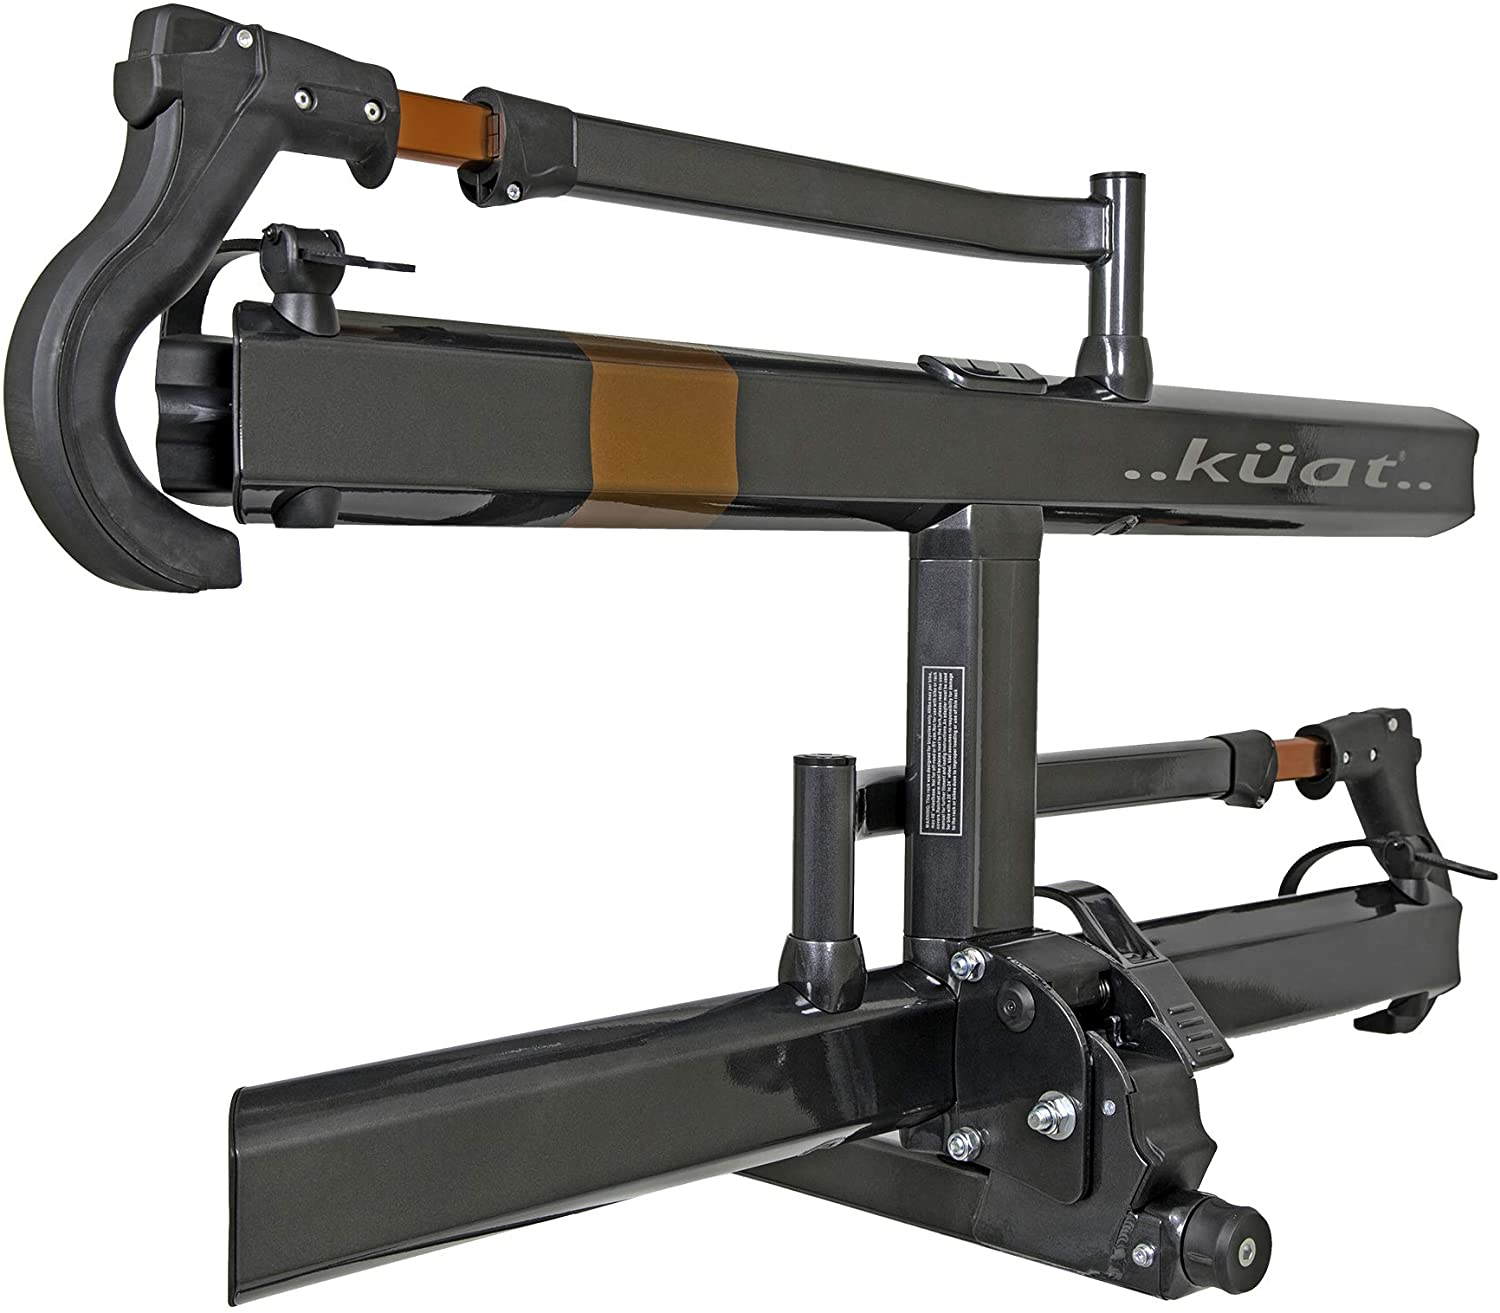 An image of a black bike hitch-type rack on a white background.